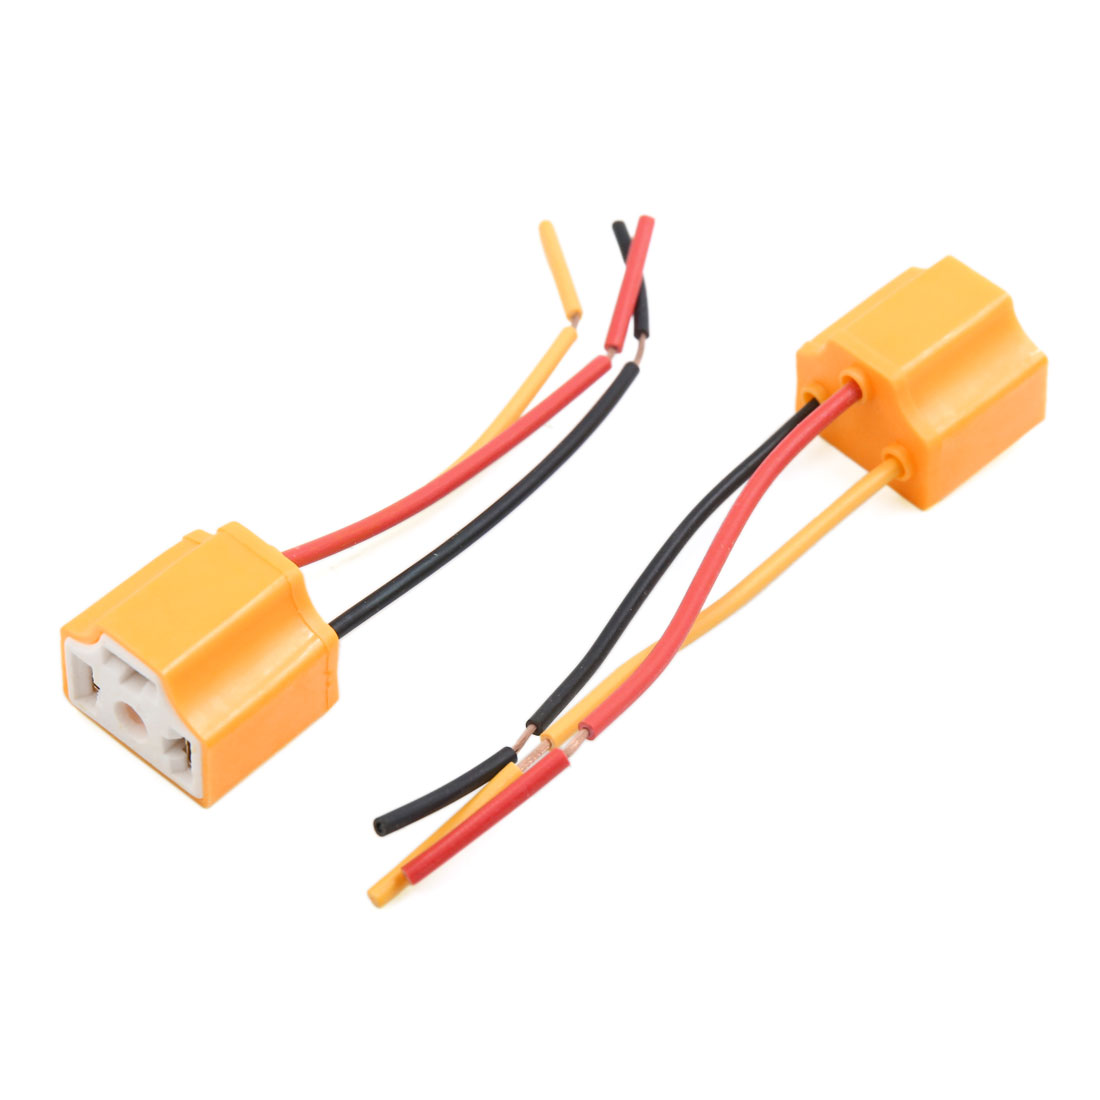 10 pcs orange 3 terminals h4 bulb socket car wire harness extension [ 1100 x 1100 Pixel ]